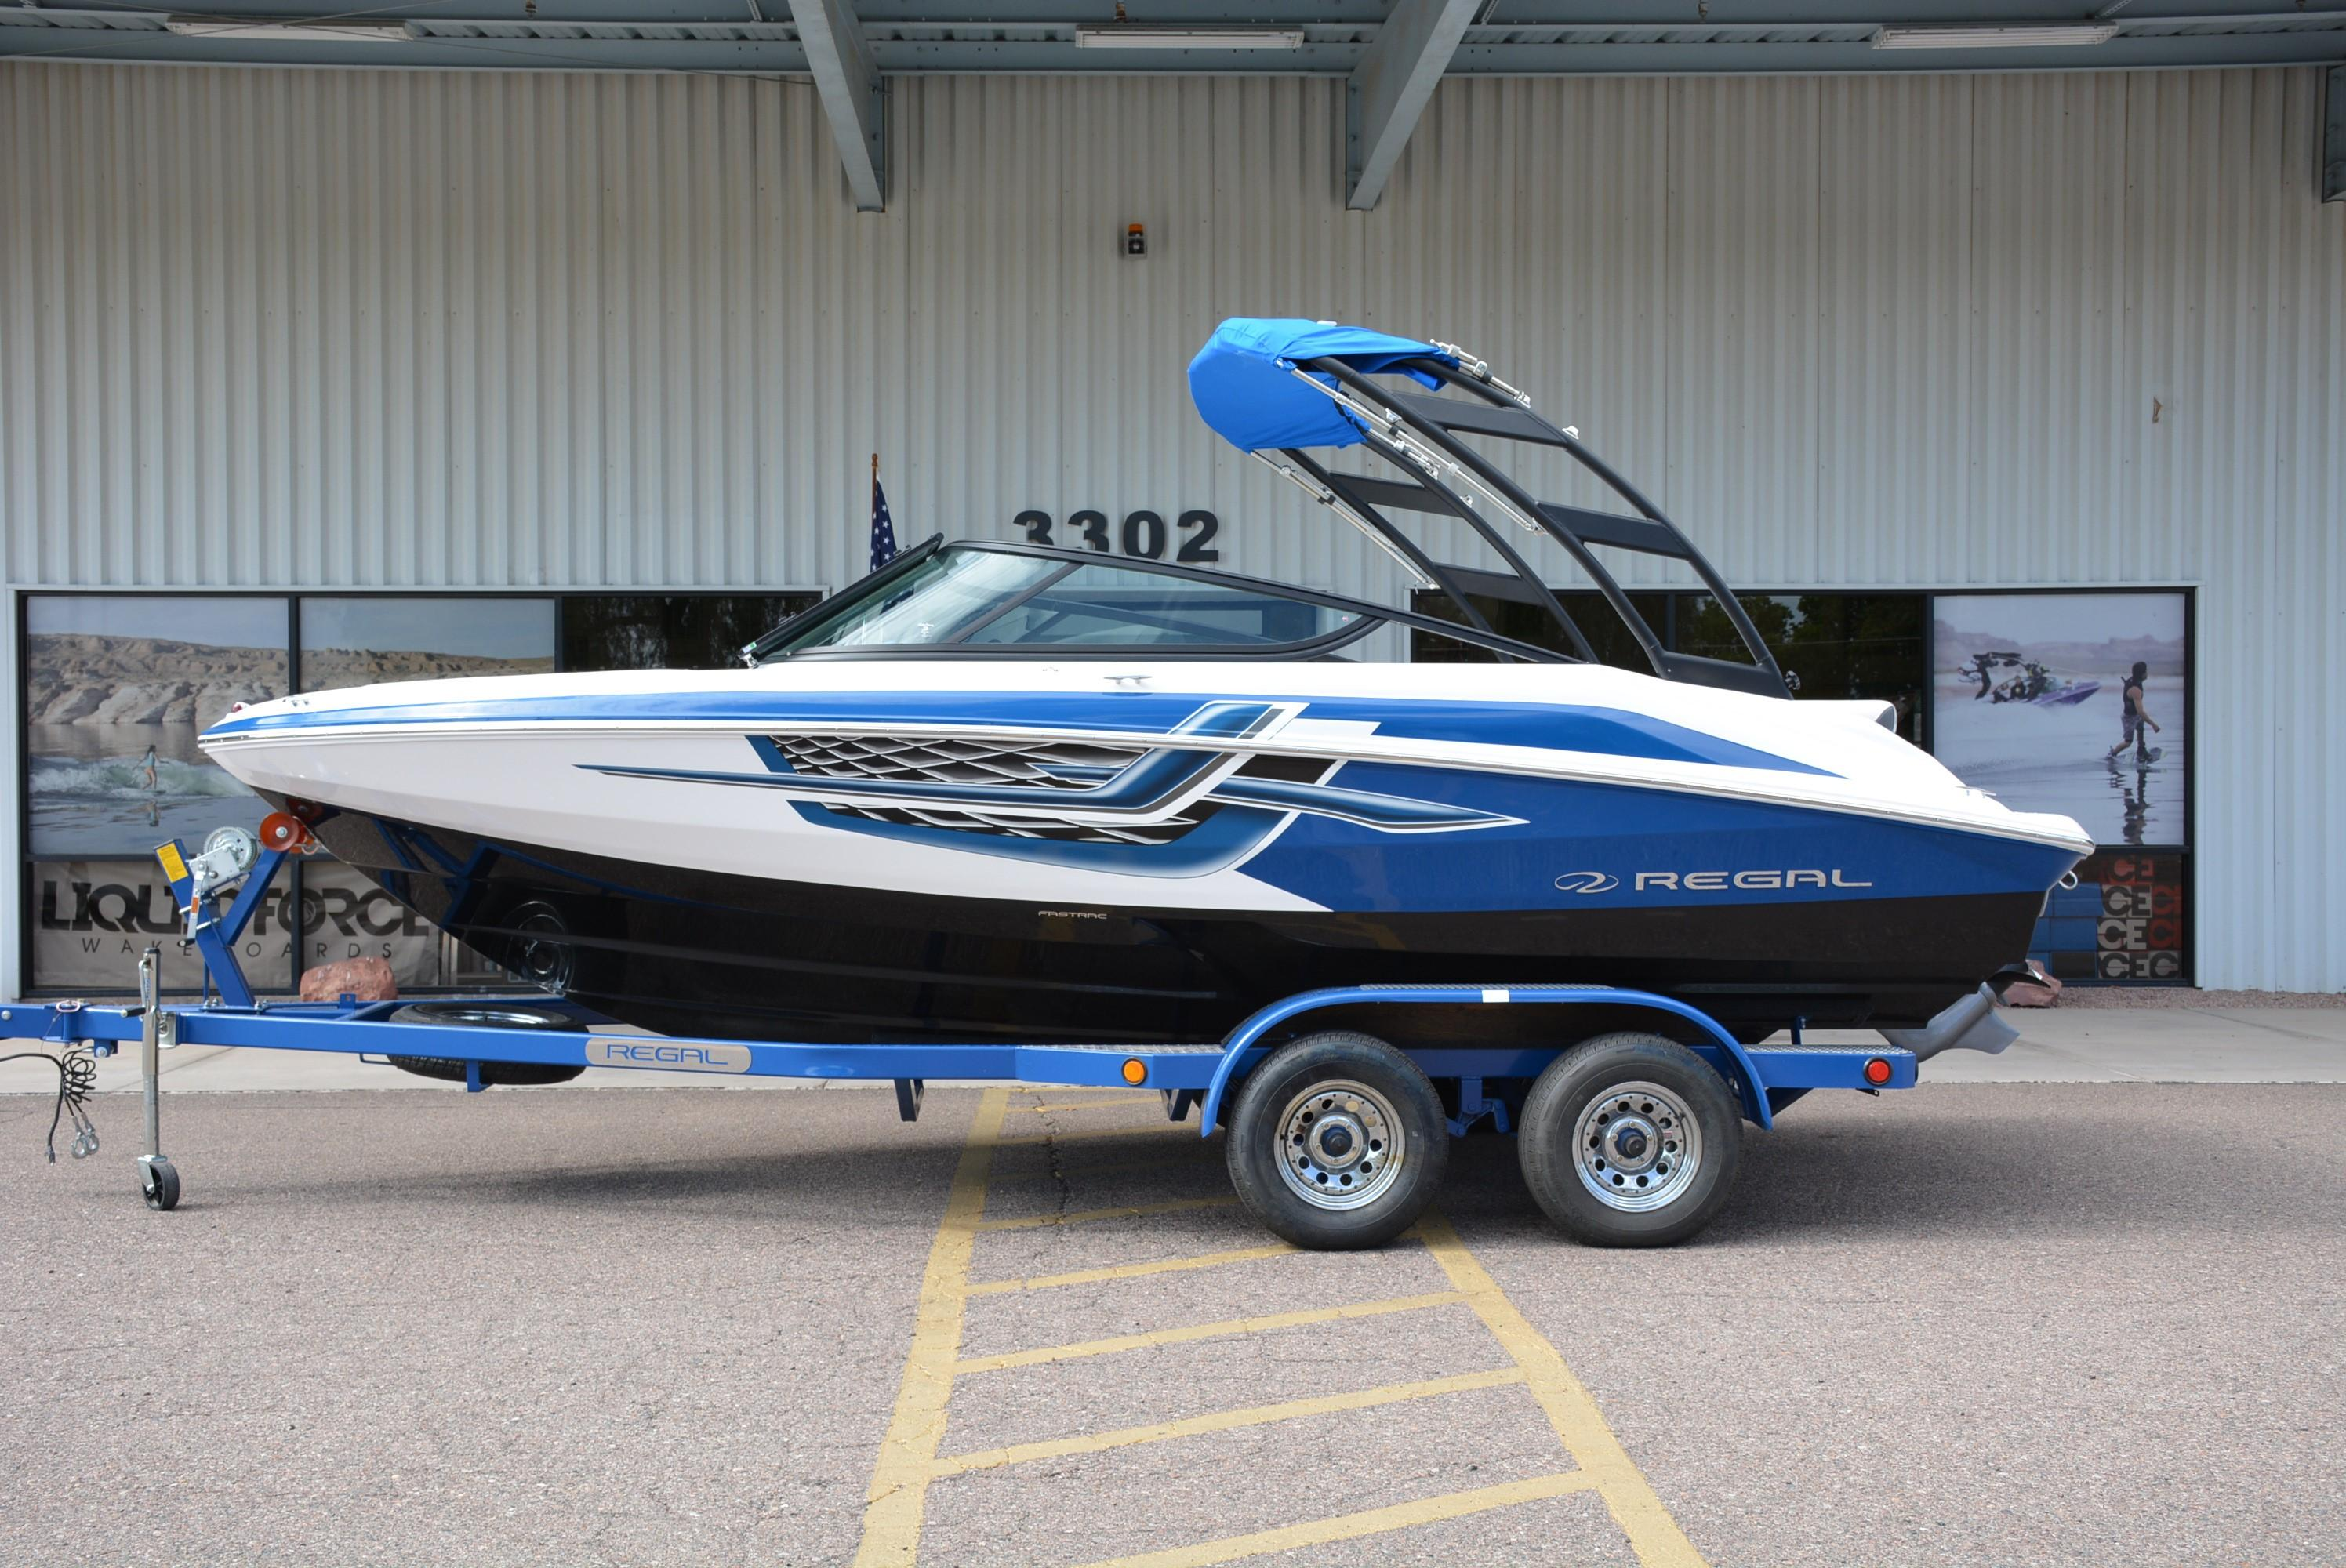 new Regal Boats For Sale - Century Marine in United States